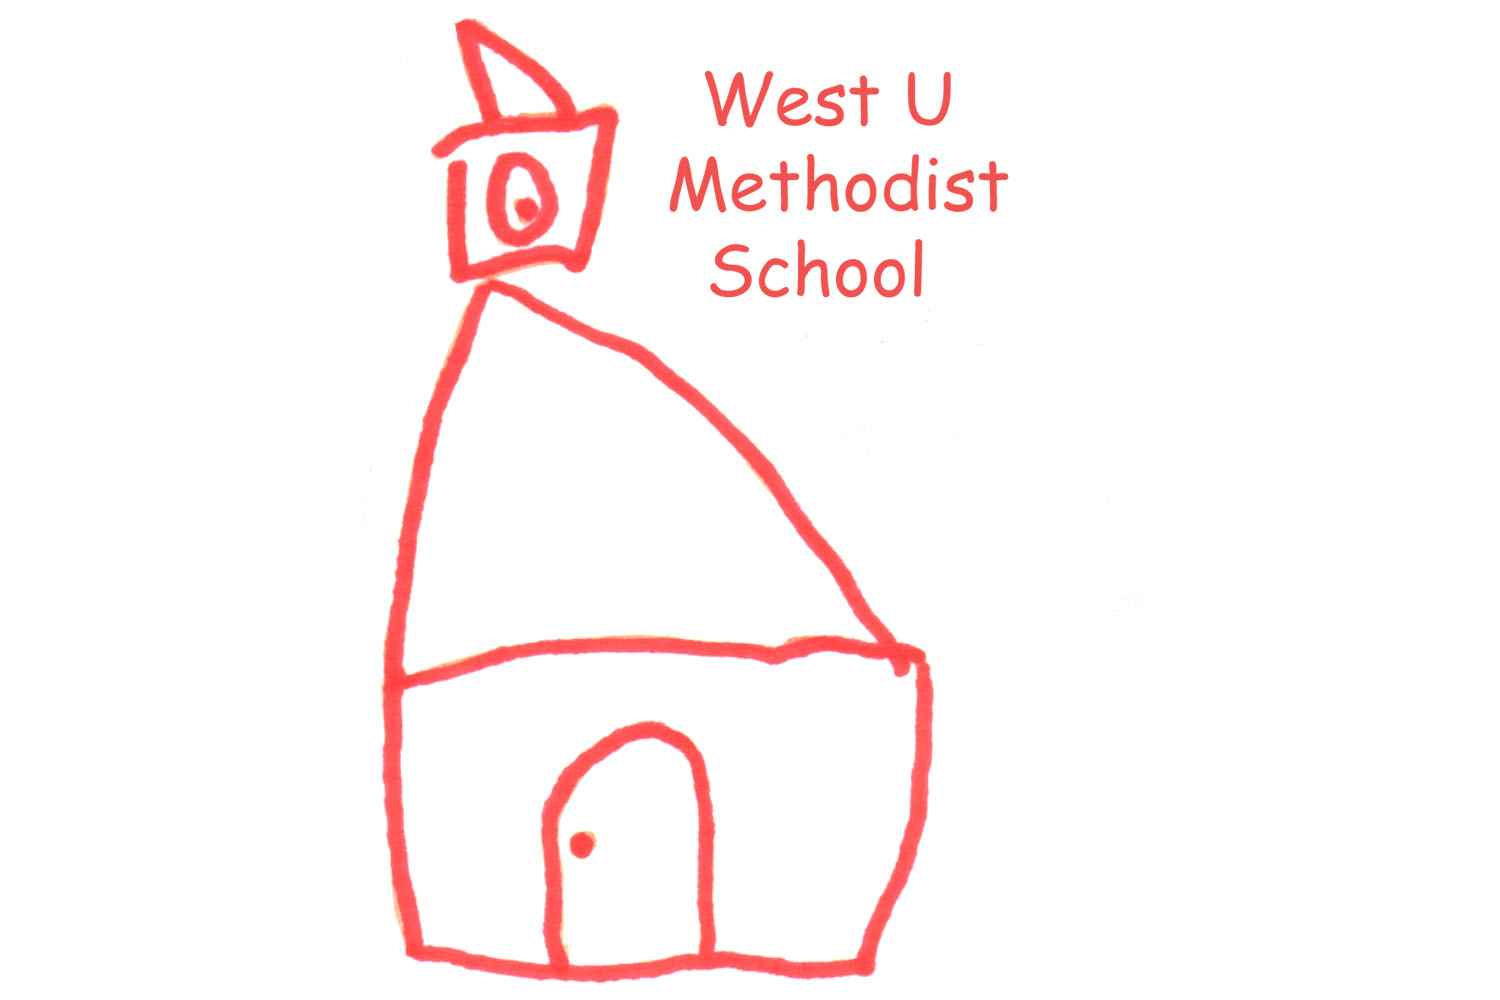 West U Methodist School - New Enrollment for 2019-2020 School YearSummer Camp for Currently Enrolled StudentsSummer Camp for New or Summer Only Students